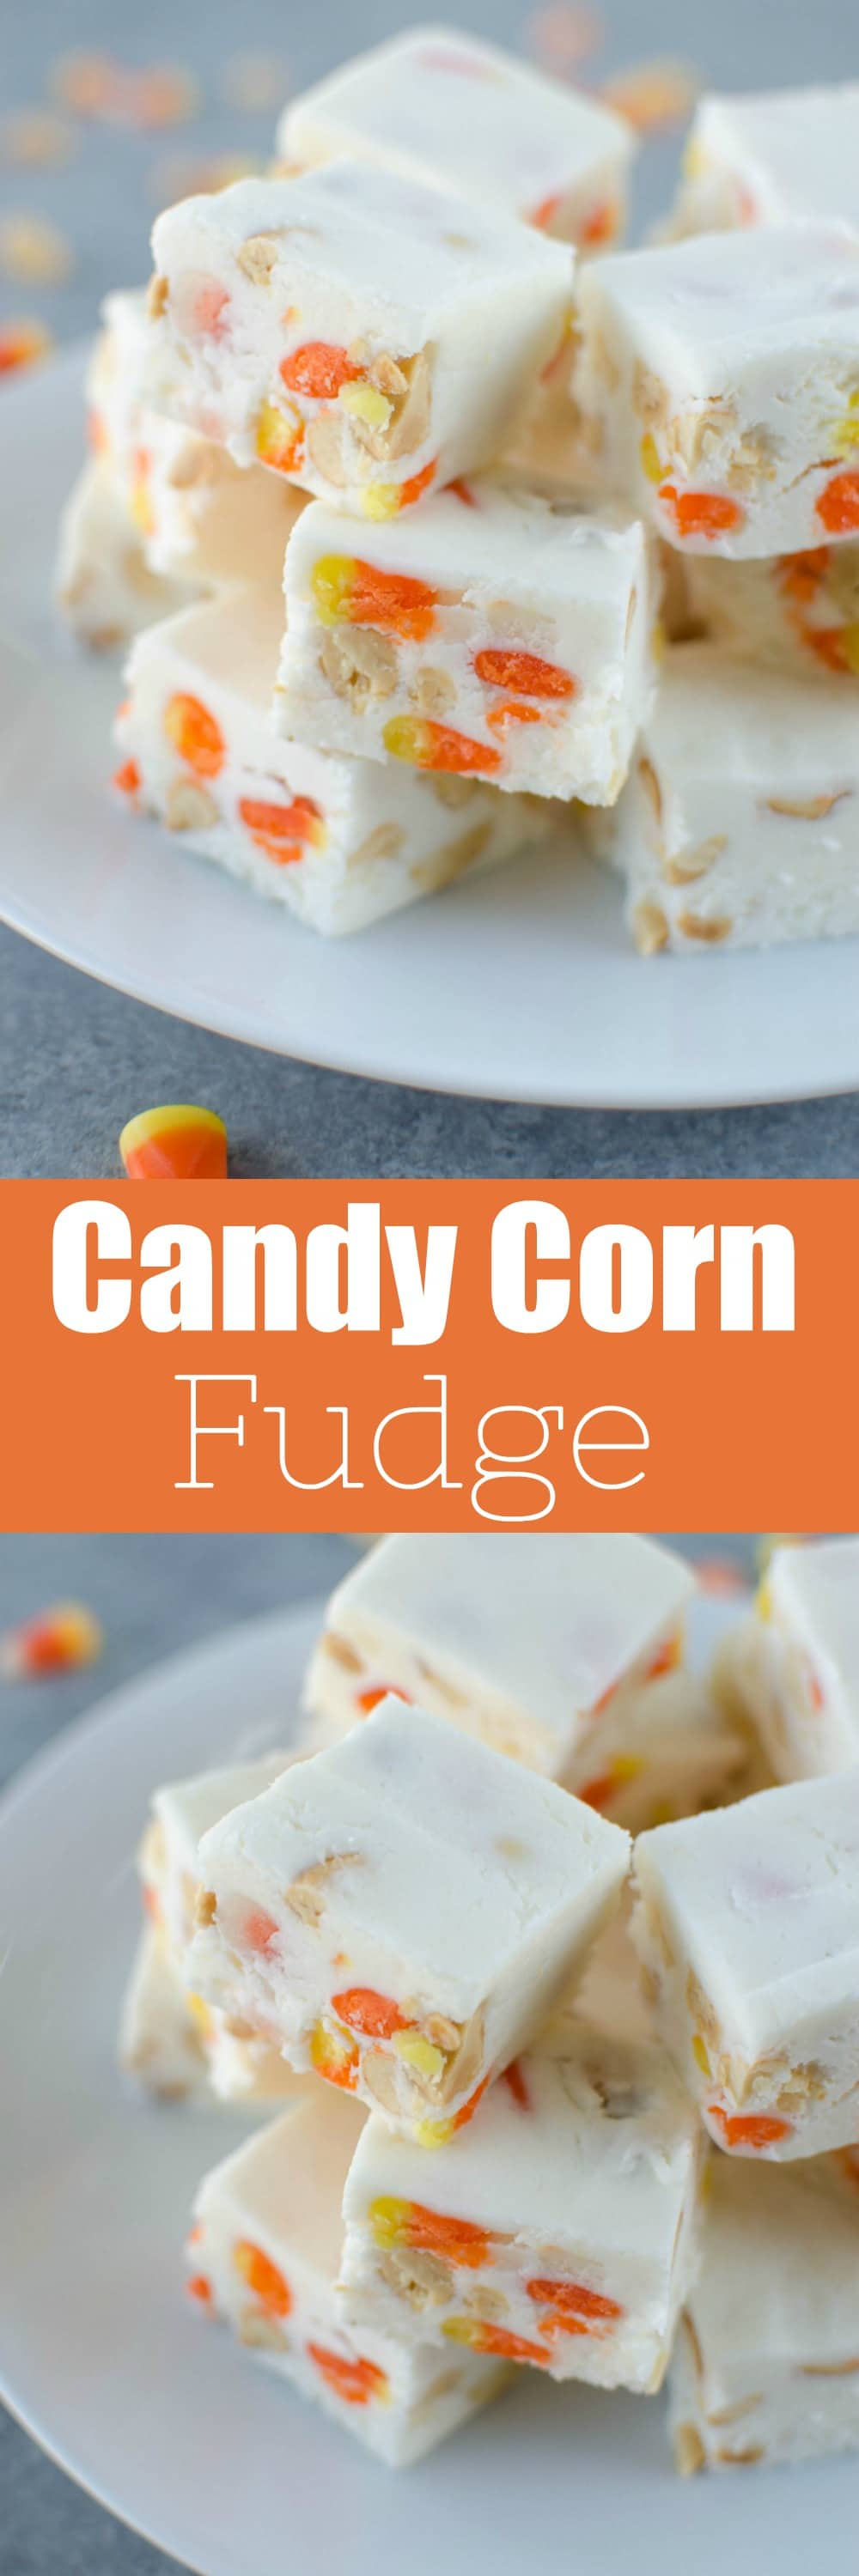 Candy Corn Fudge - white chocolate fudge with mini candy corn and salted peanuts. The perfect sweet and salty treat for Halloween!